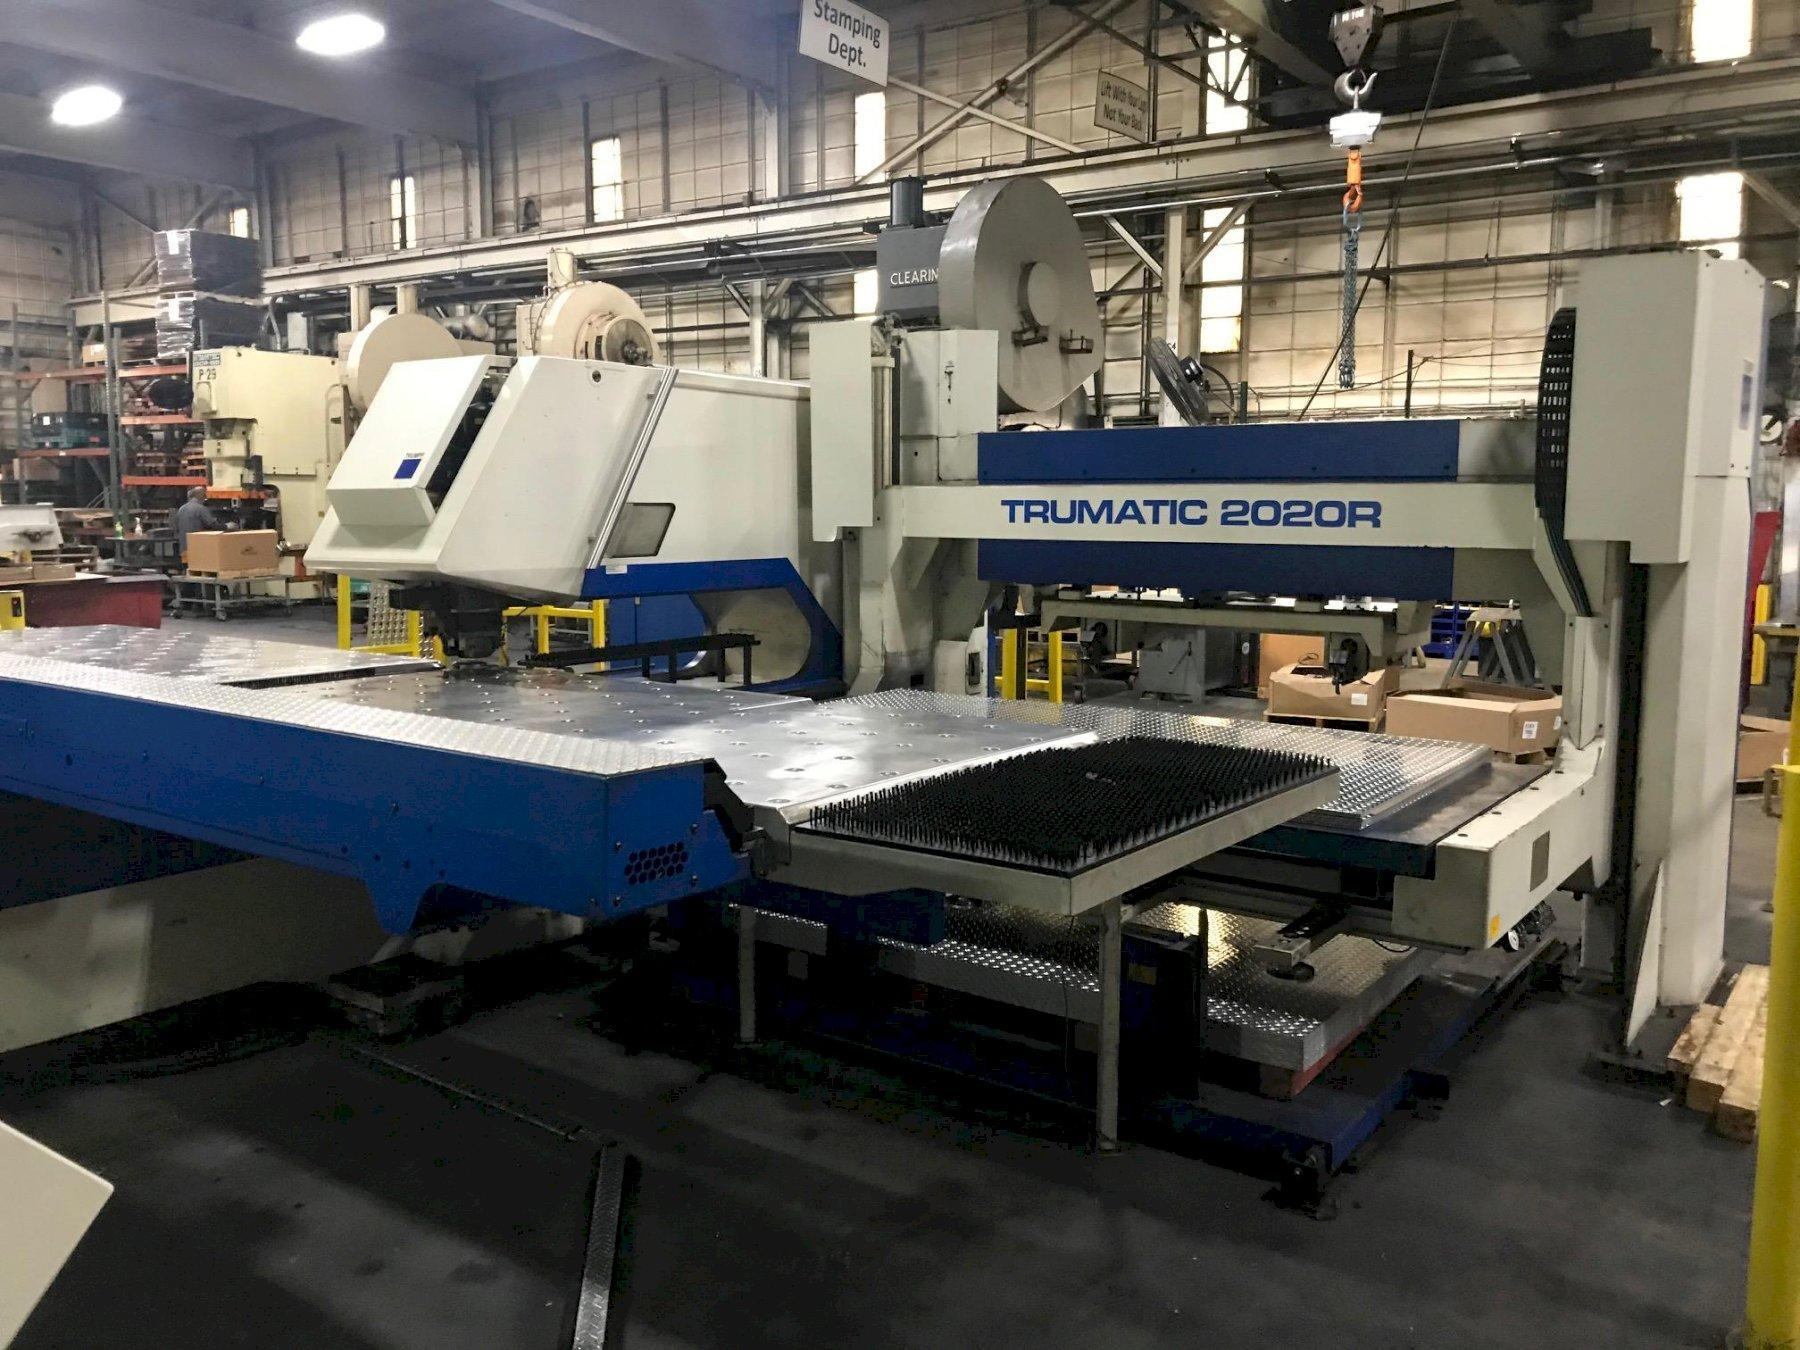 USED TRUMPF CNC TURRET PUNCH MODEL TC 2020R WITH SHEET MASTER COMPACT LOAD UNLOAD SYSTEM, Stock# 10725, Year 2005